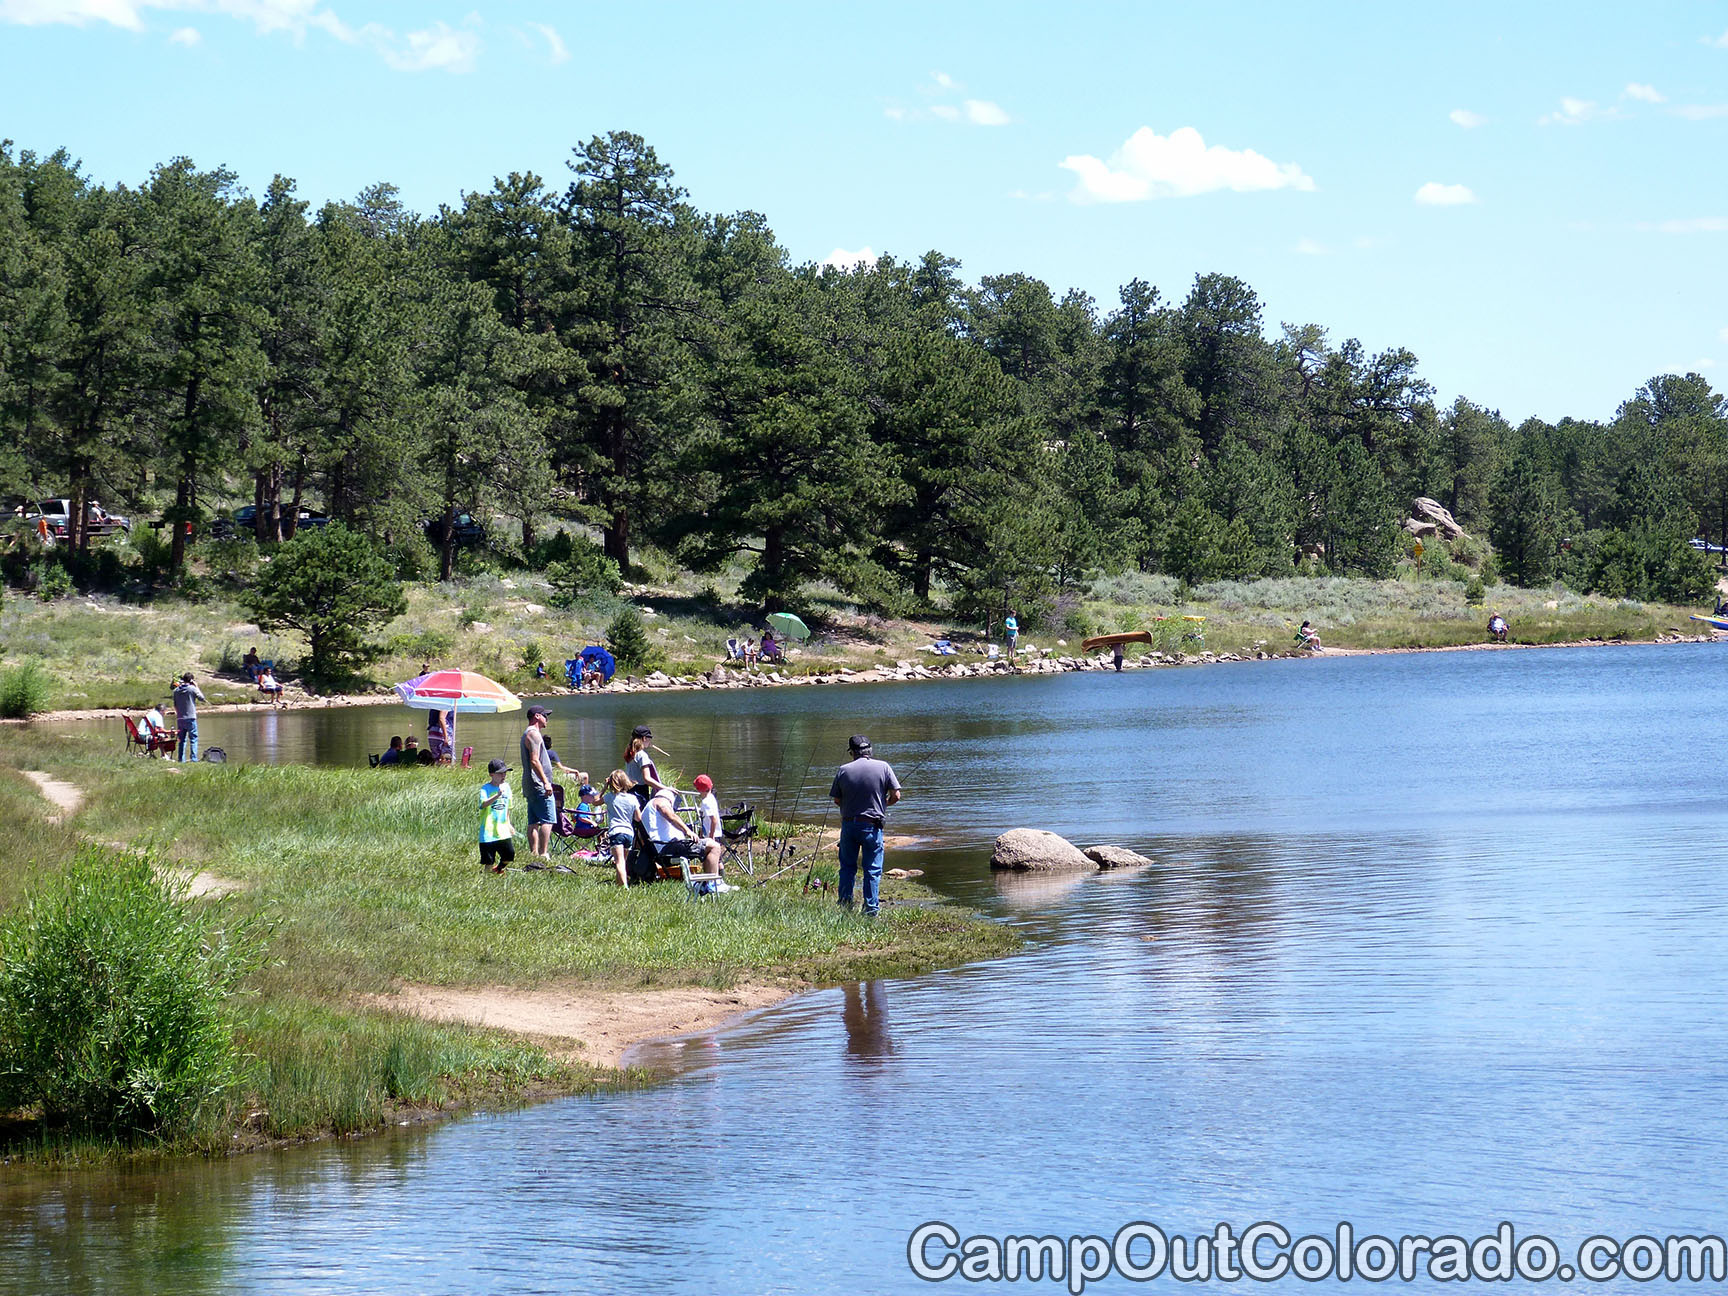 Campoutcolorado-dowdy-lake-campground-day-fishing